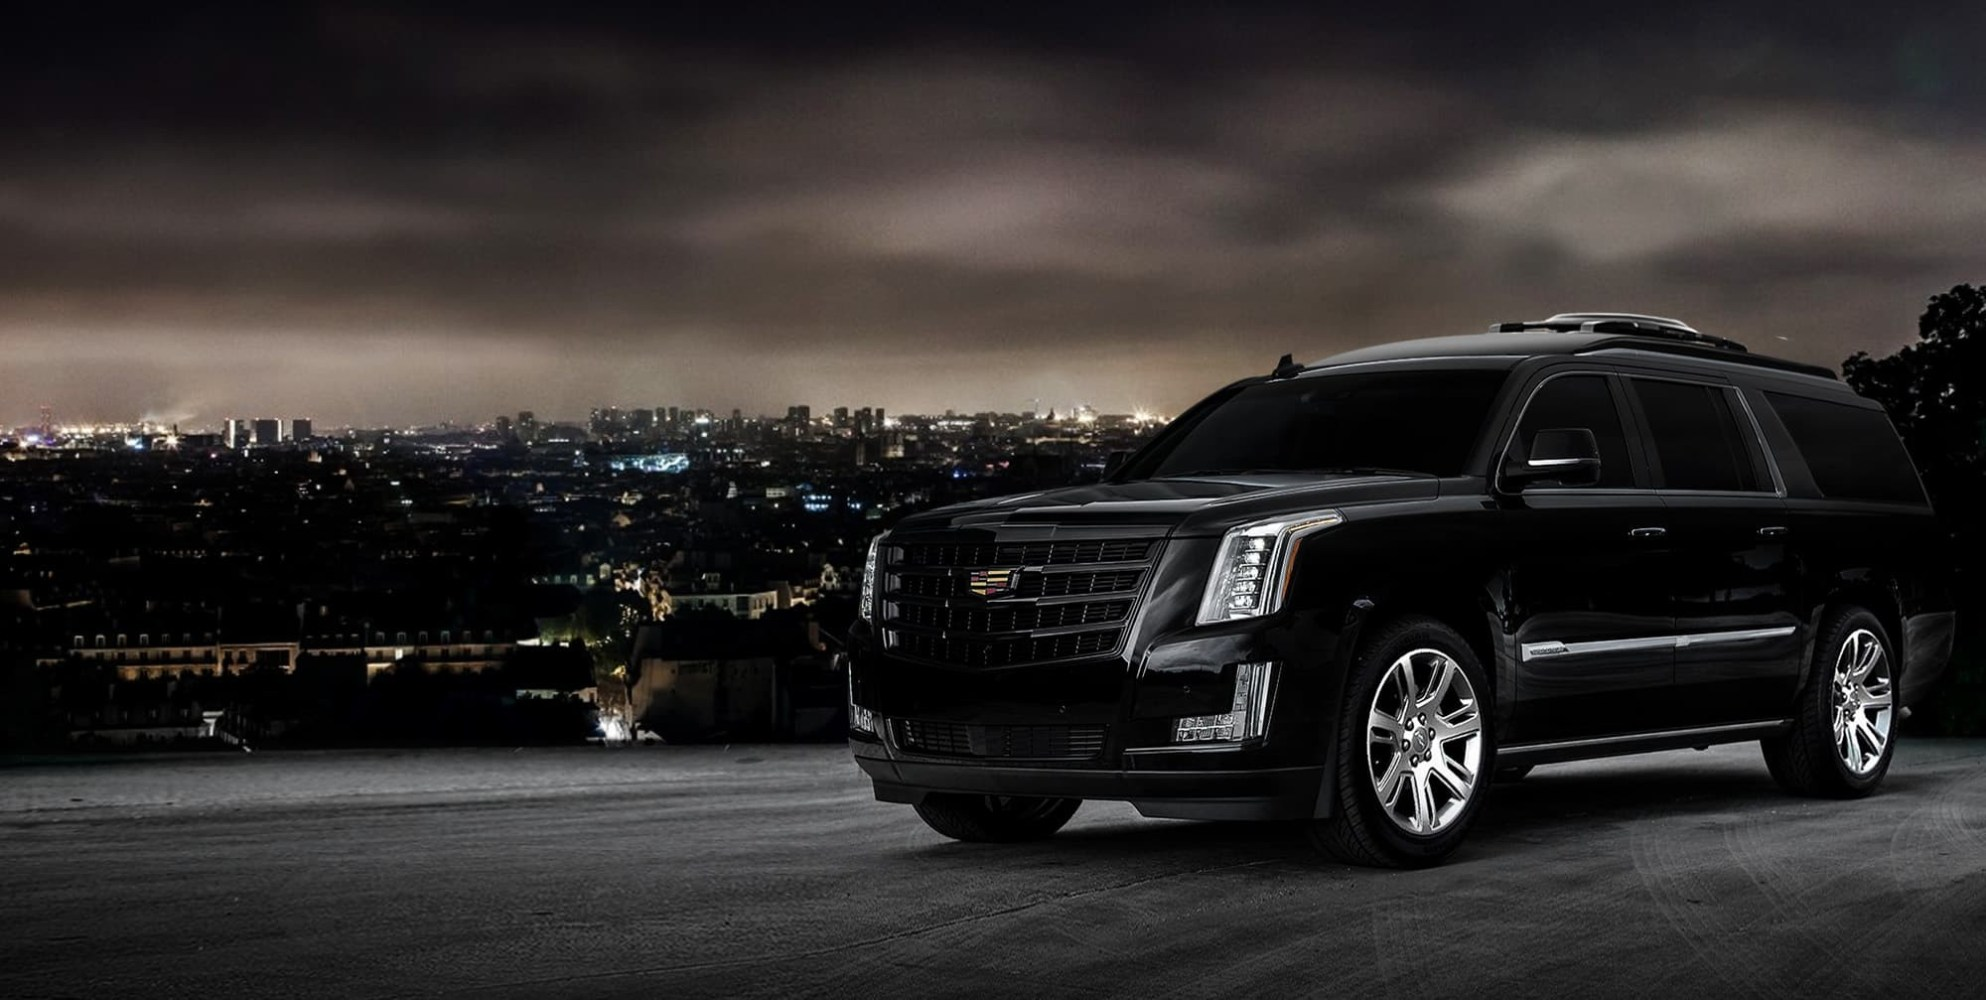 hight resolution of cadillac escalade